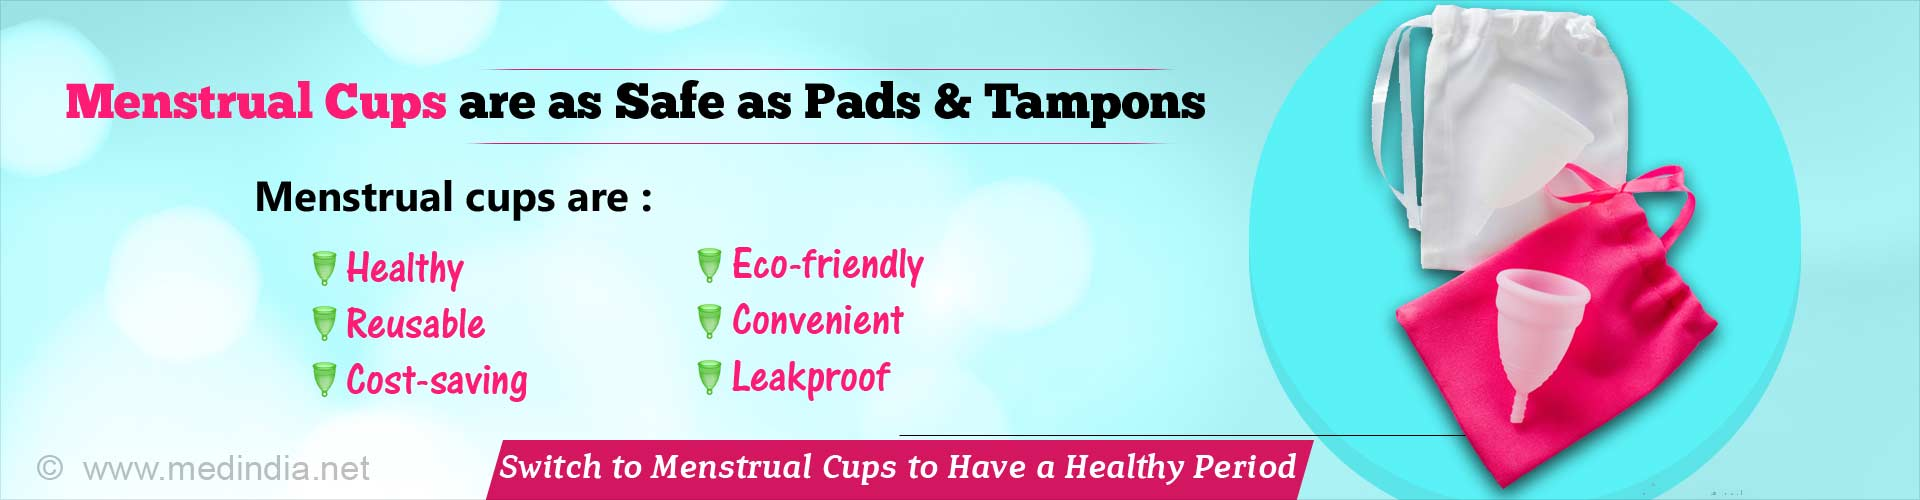 Menstrual cups are as safe as pads and tampons. Menstrual cups are healthier, reusable, cost-saving, eco-friendly, convenient and leakproof. Switch to menstrual cups to have a healthy period.